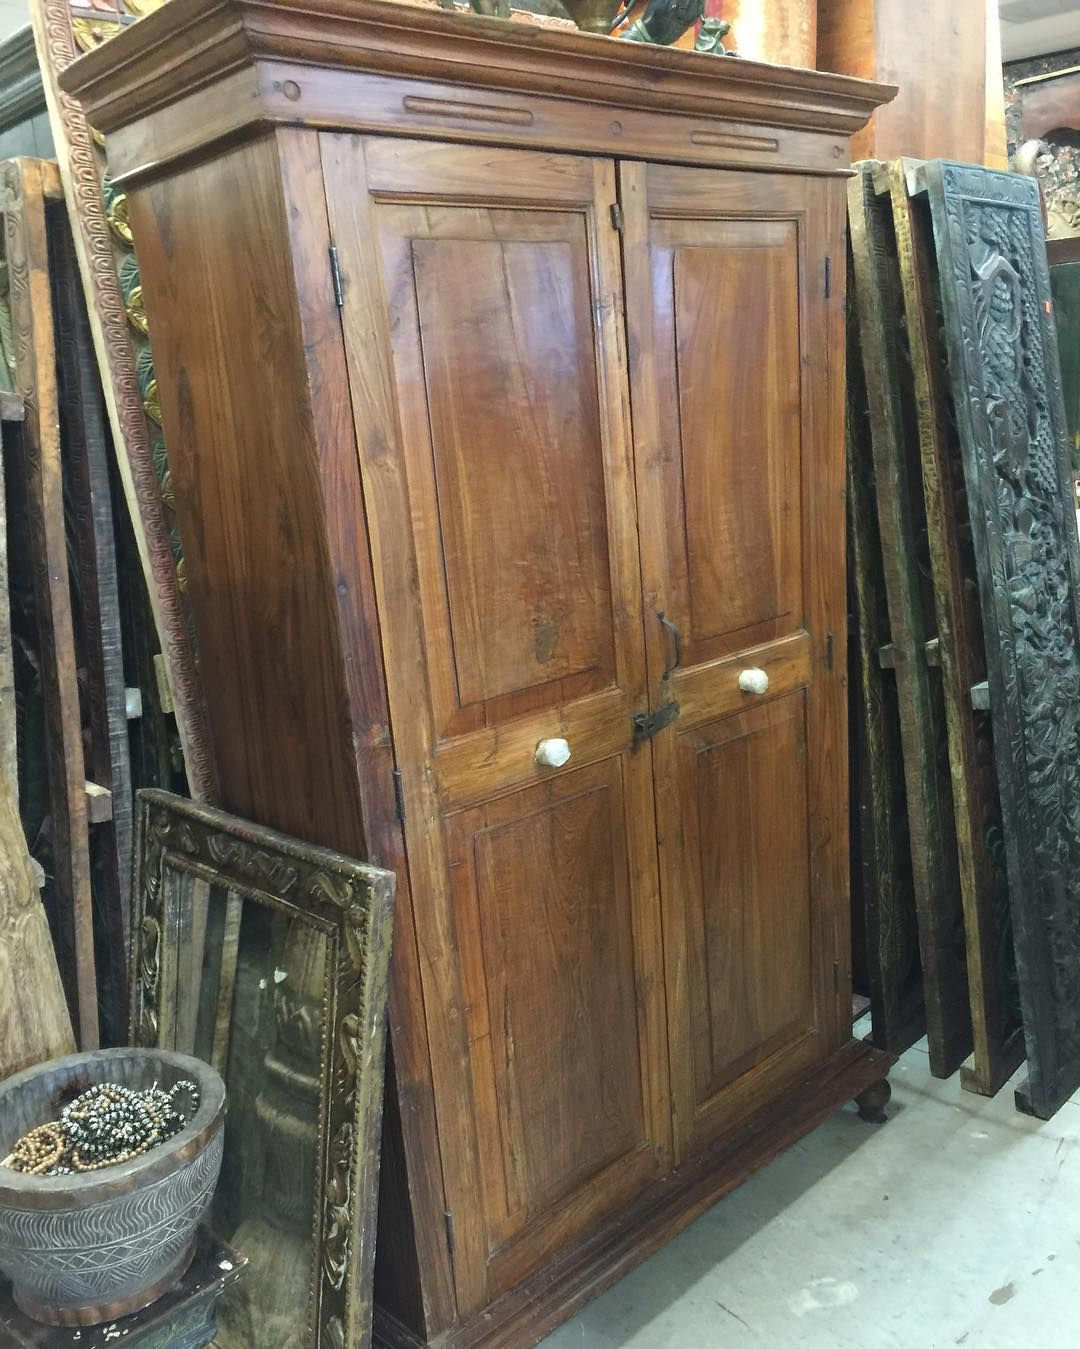 British Colonial Teak Almirah Rustic Old Wood Armoire Cabinet